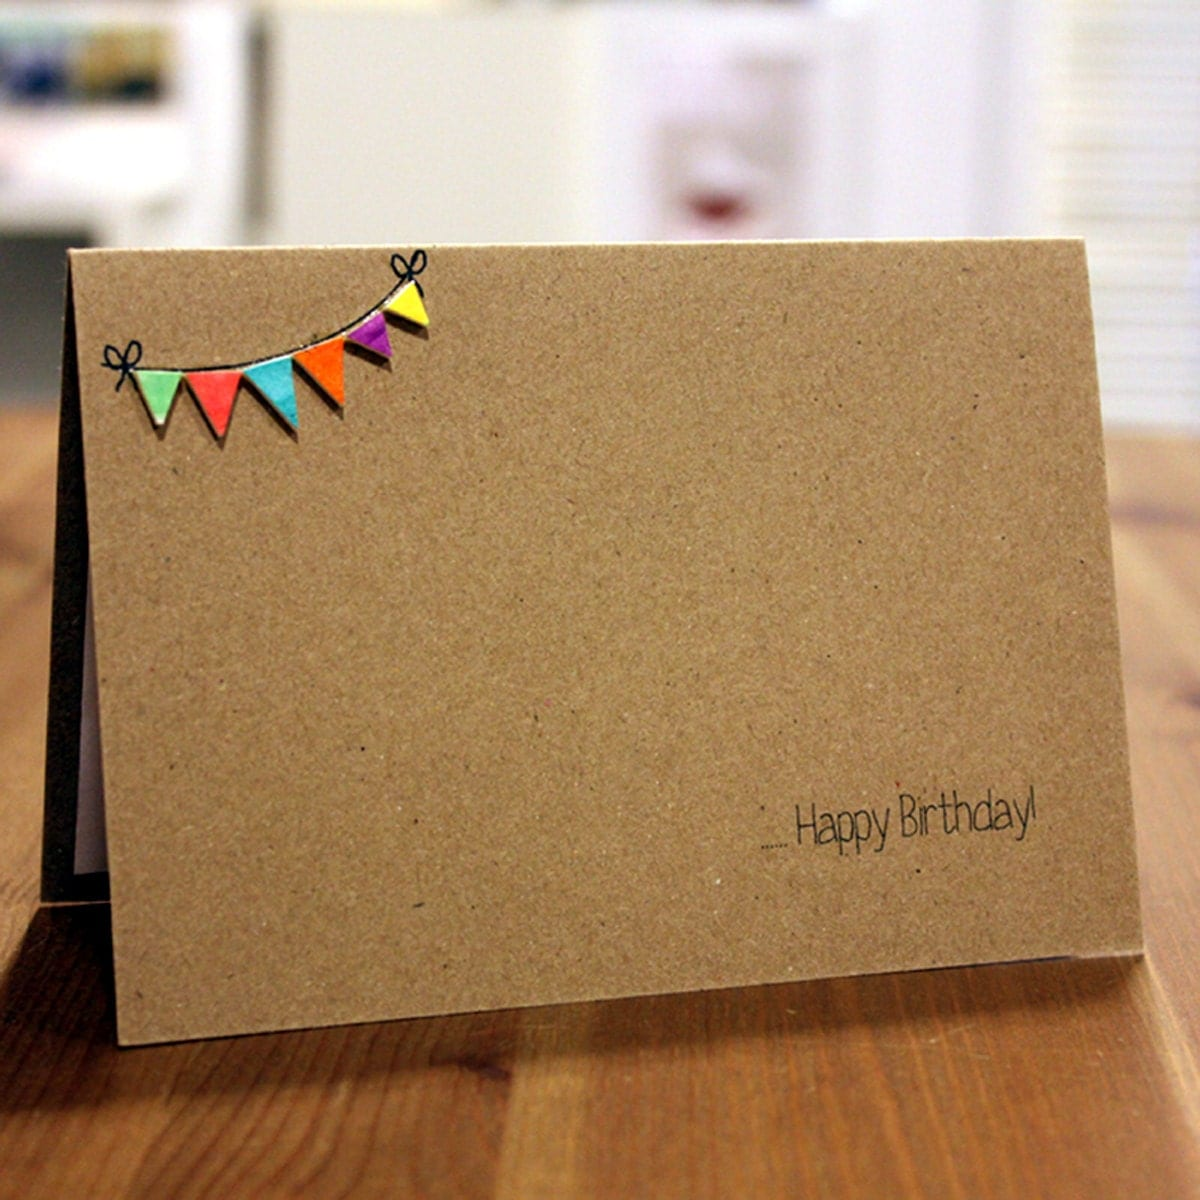 Handmade Birthday Card // Happy Birthday By LittleSilverleaf